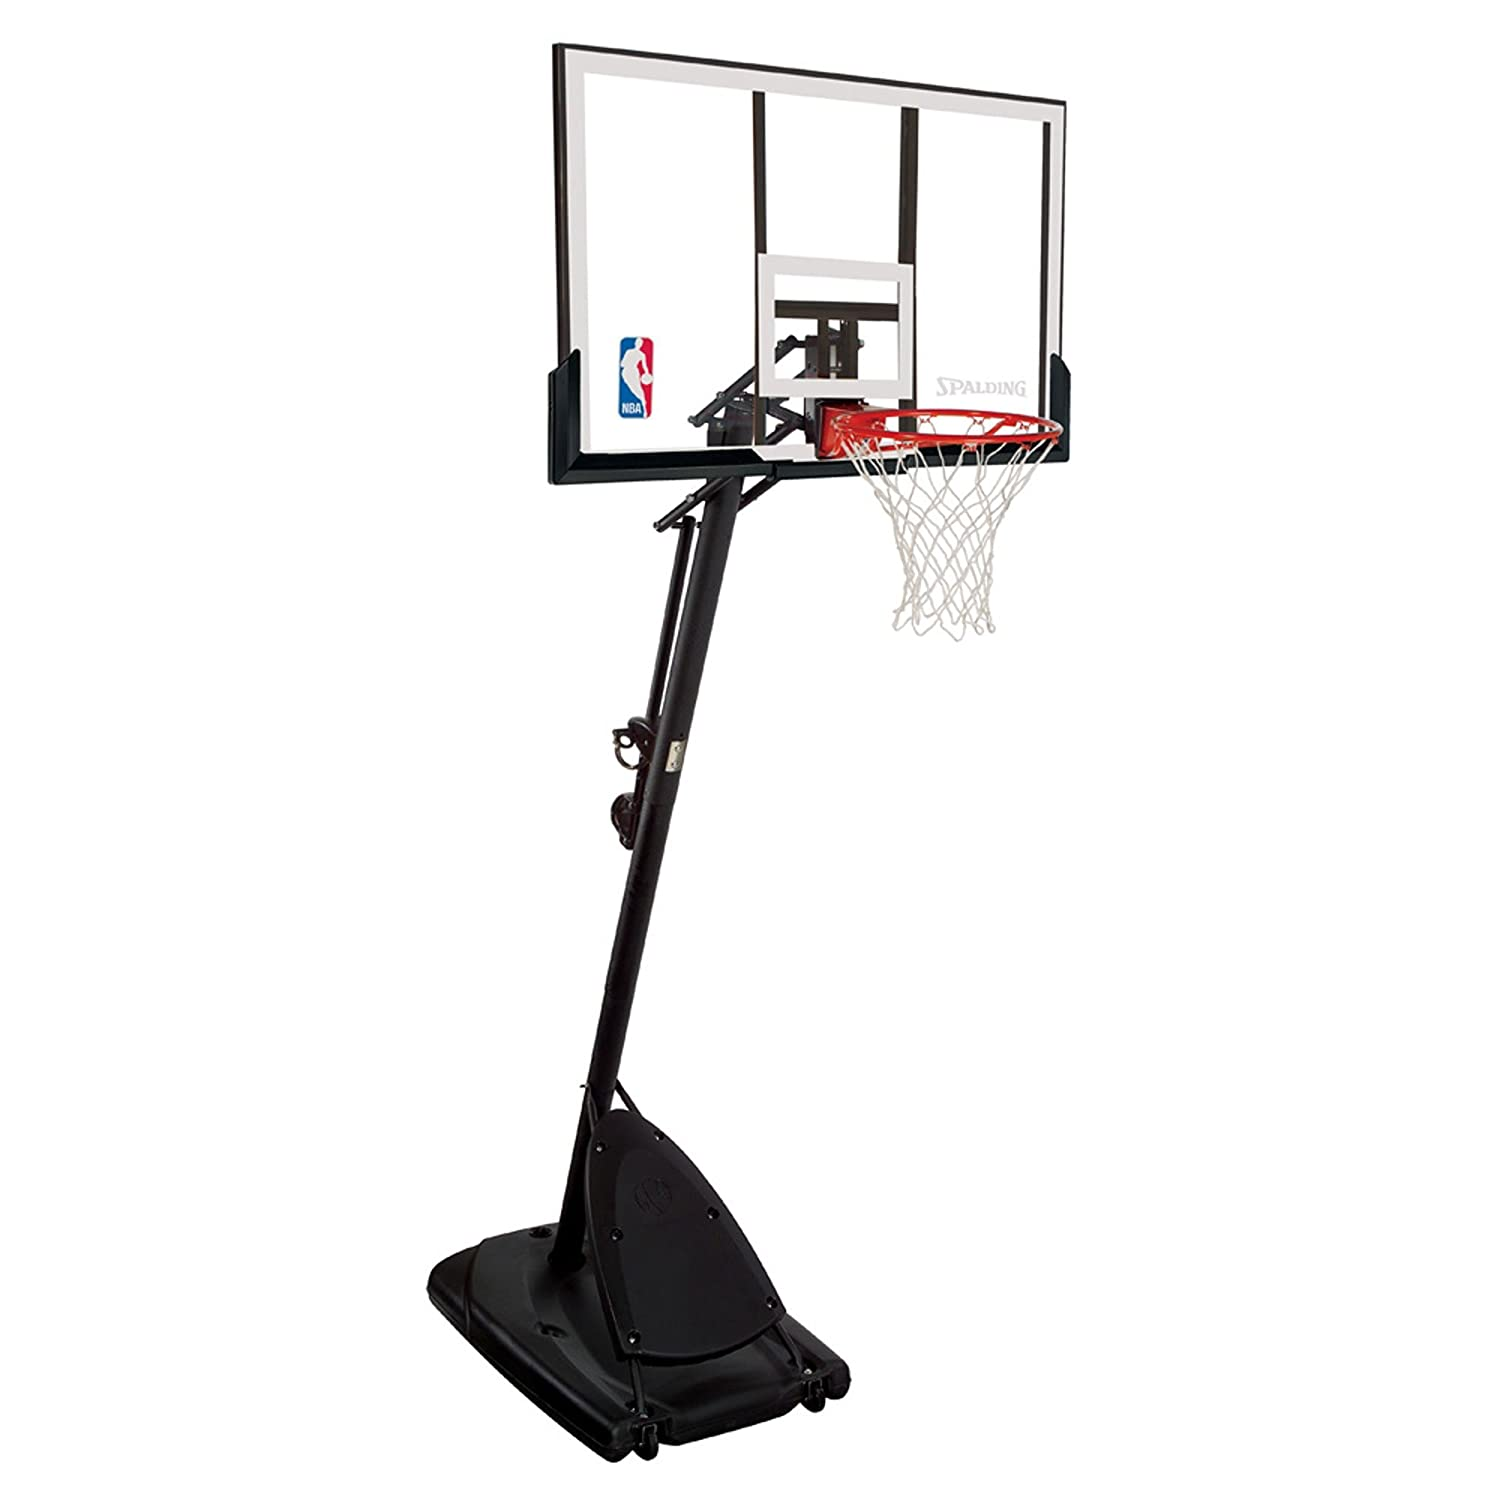 Spalding 66291 Pro Slam Portable Basketball System  with 54-Inch Acrylic Backboard